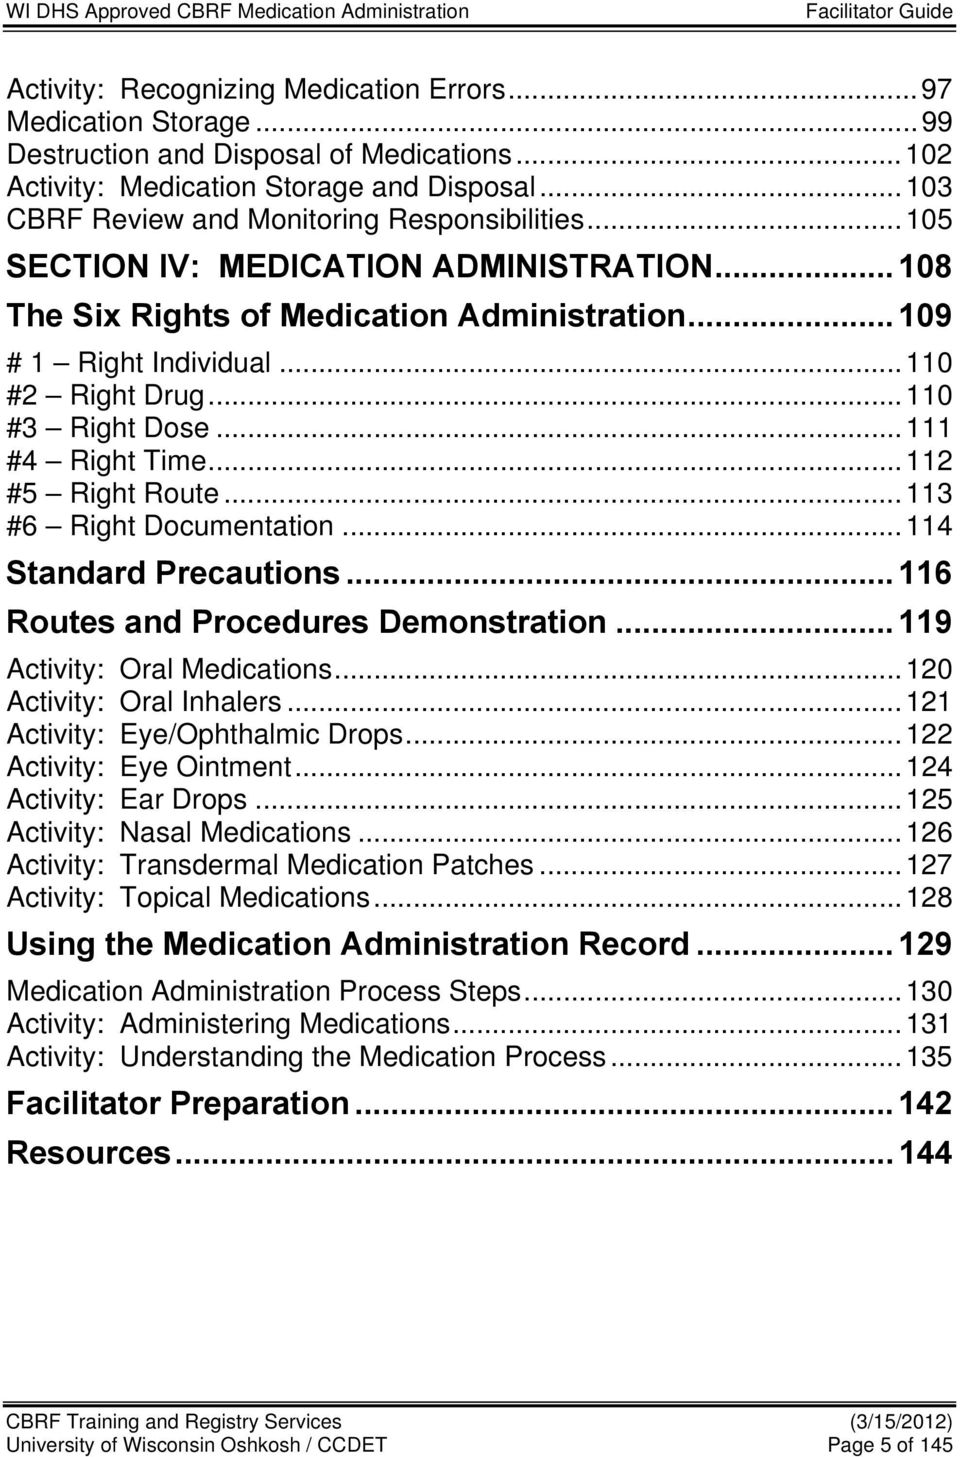 .. 110 #3 Right Dose... 111 #4 Right Time... 112 #5 Right Route... 113 #6 Right Documentation... 114 Standard Precautions... 116 Routes and Procedures Demonstration... 119 Activity: Oral Medications.